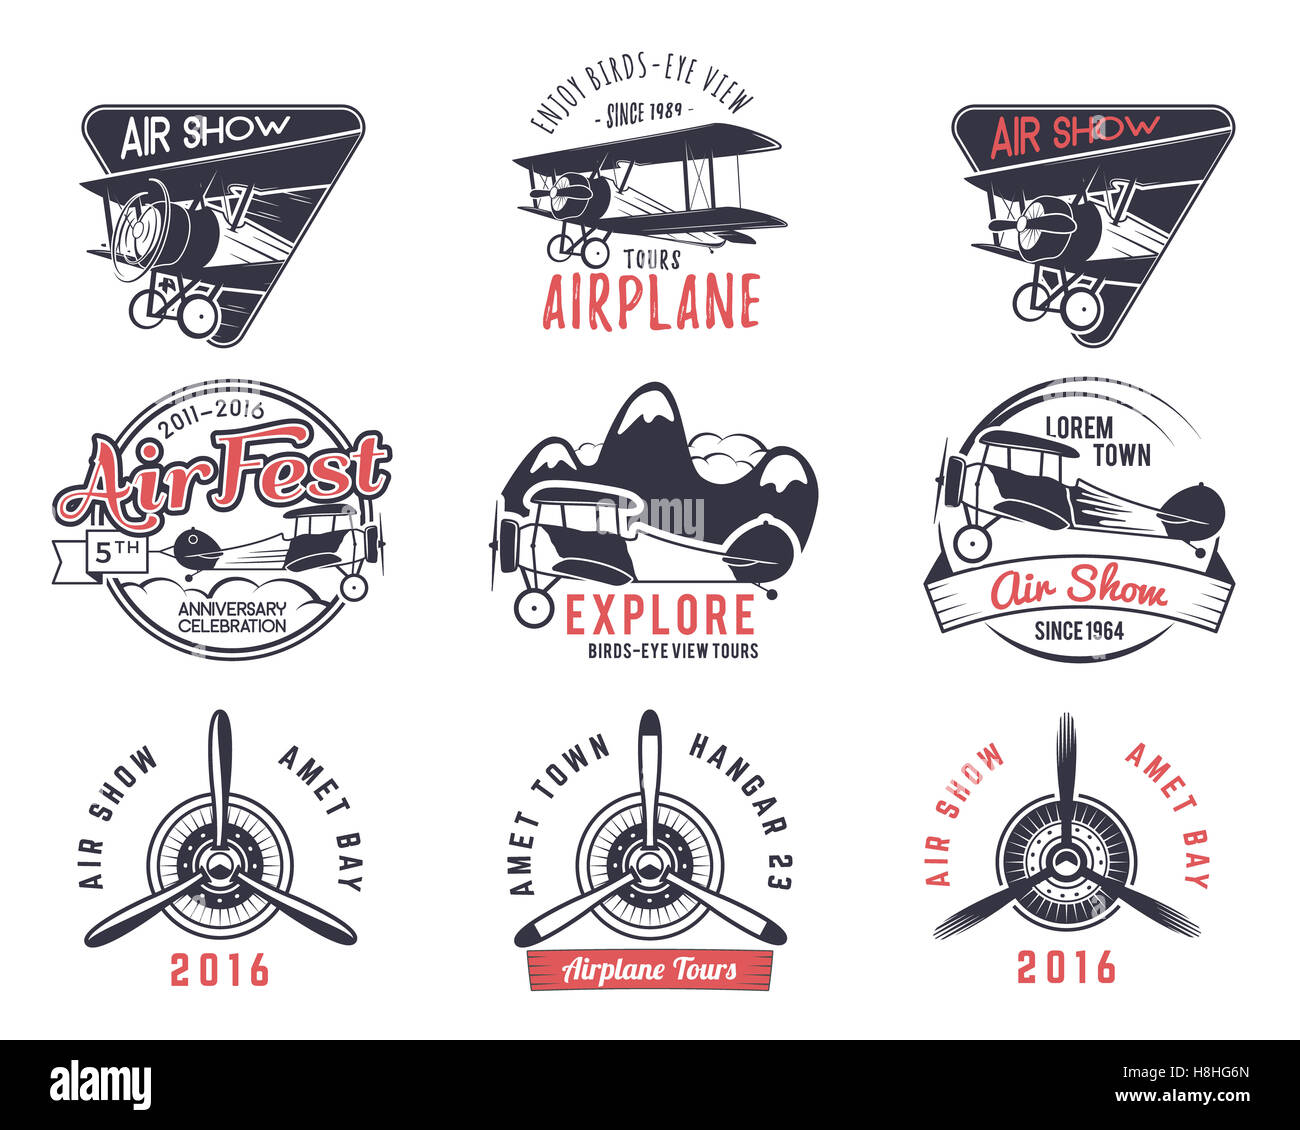 old fly stamps. Travel or business airplane tour emblems. Biplane academy labels. Retro aerial badges isolated. - Stock Image